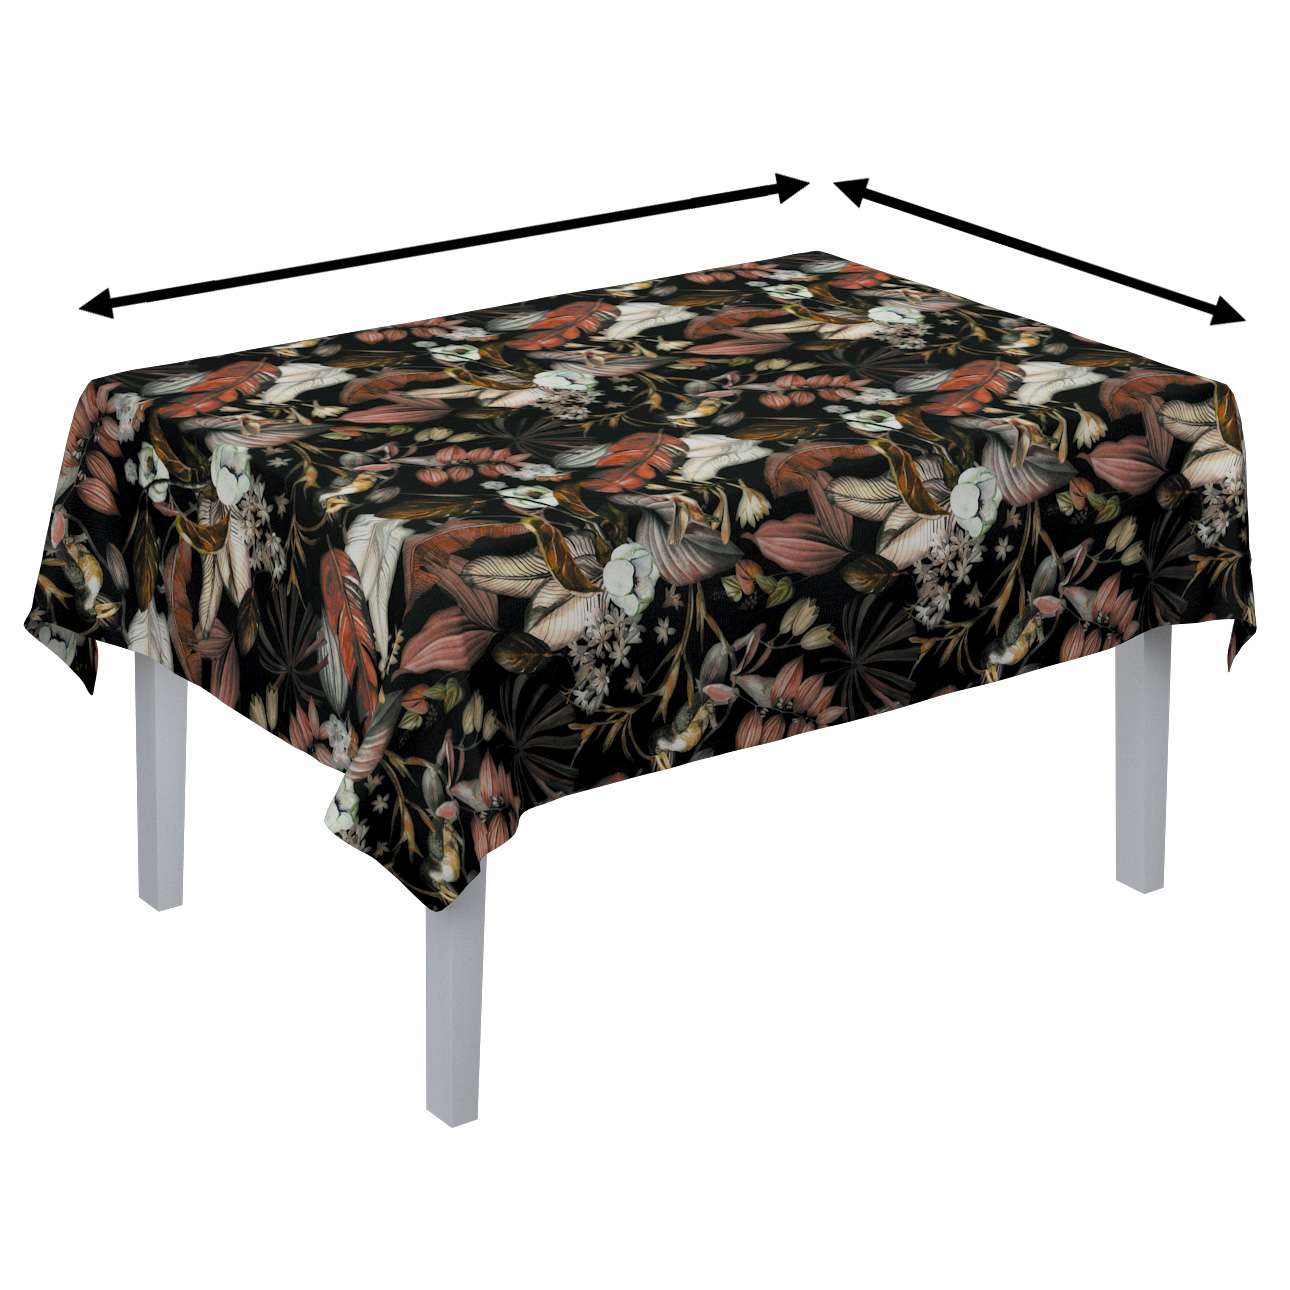 Rectangular tablecloth in collection Abigail, fabric: 143-10